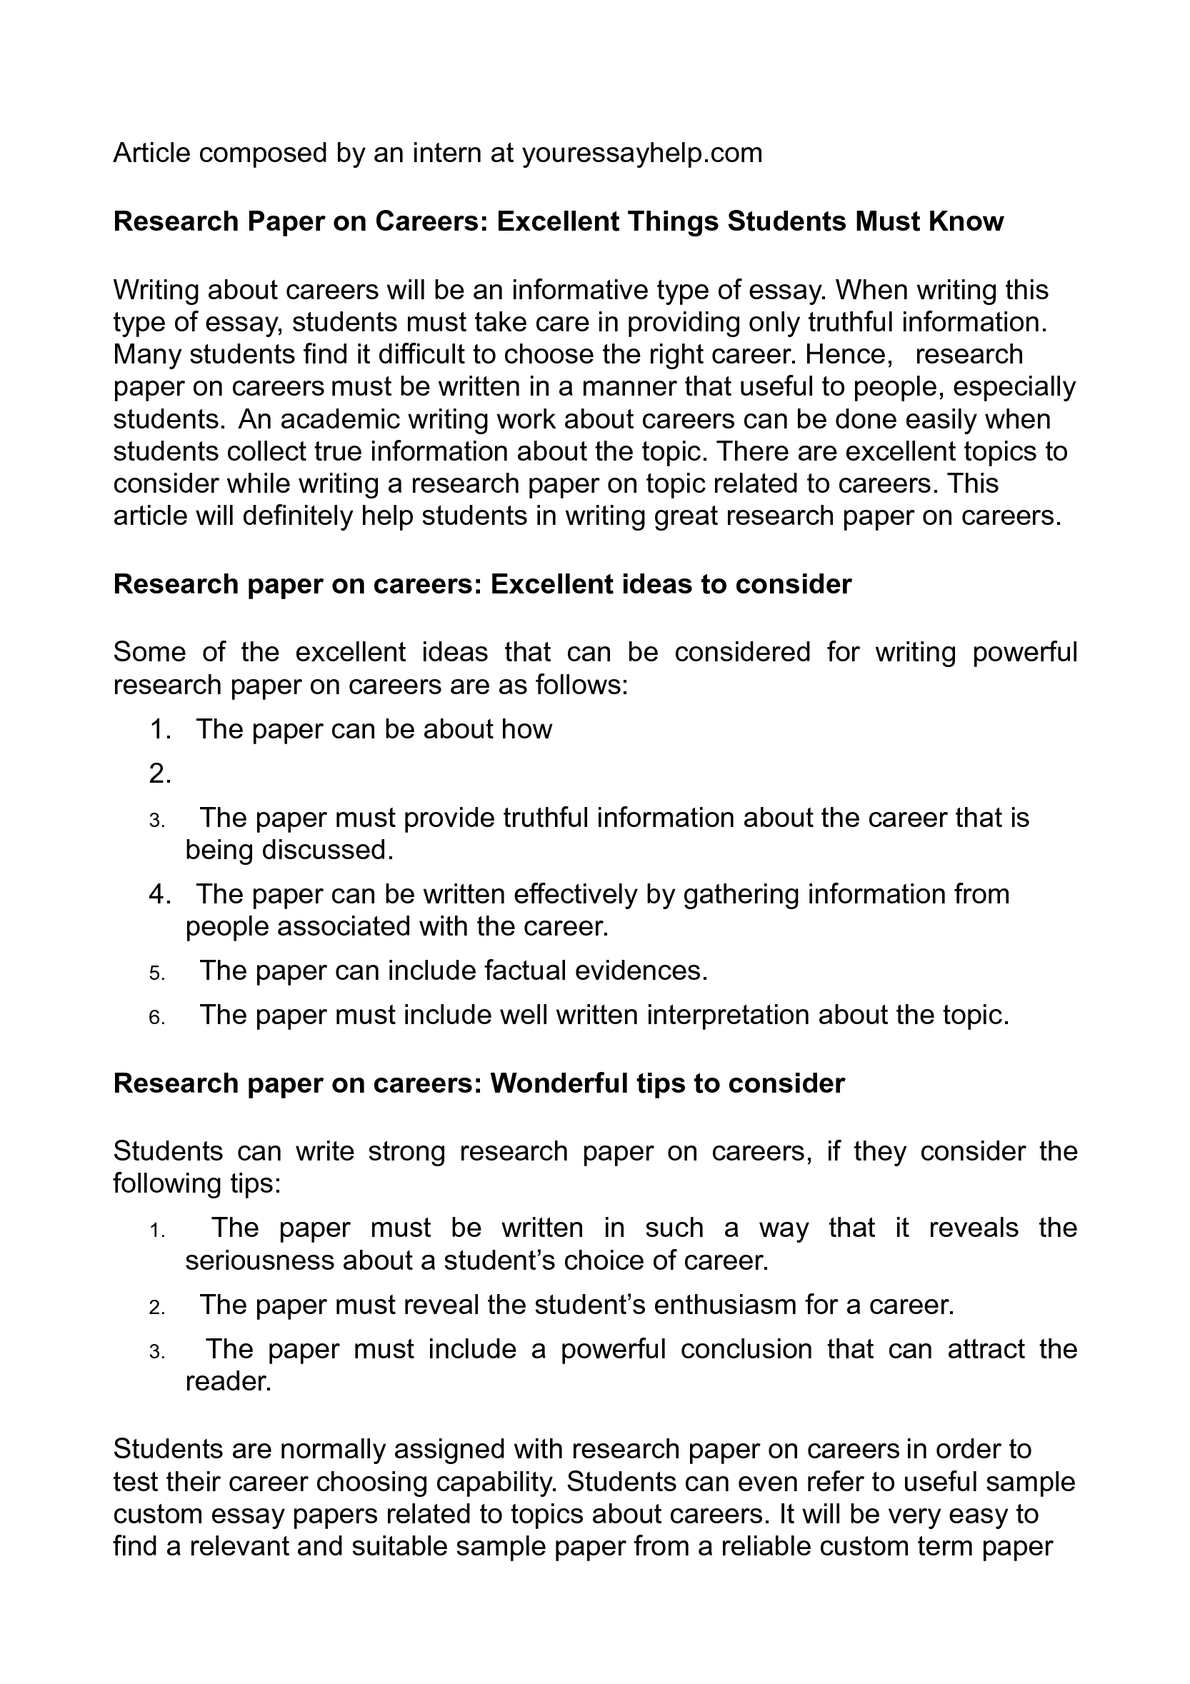 006 P1 Research Paper On Breathtaking Careers Thesis Statement For A Topics Full